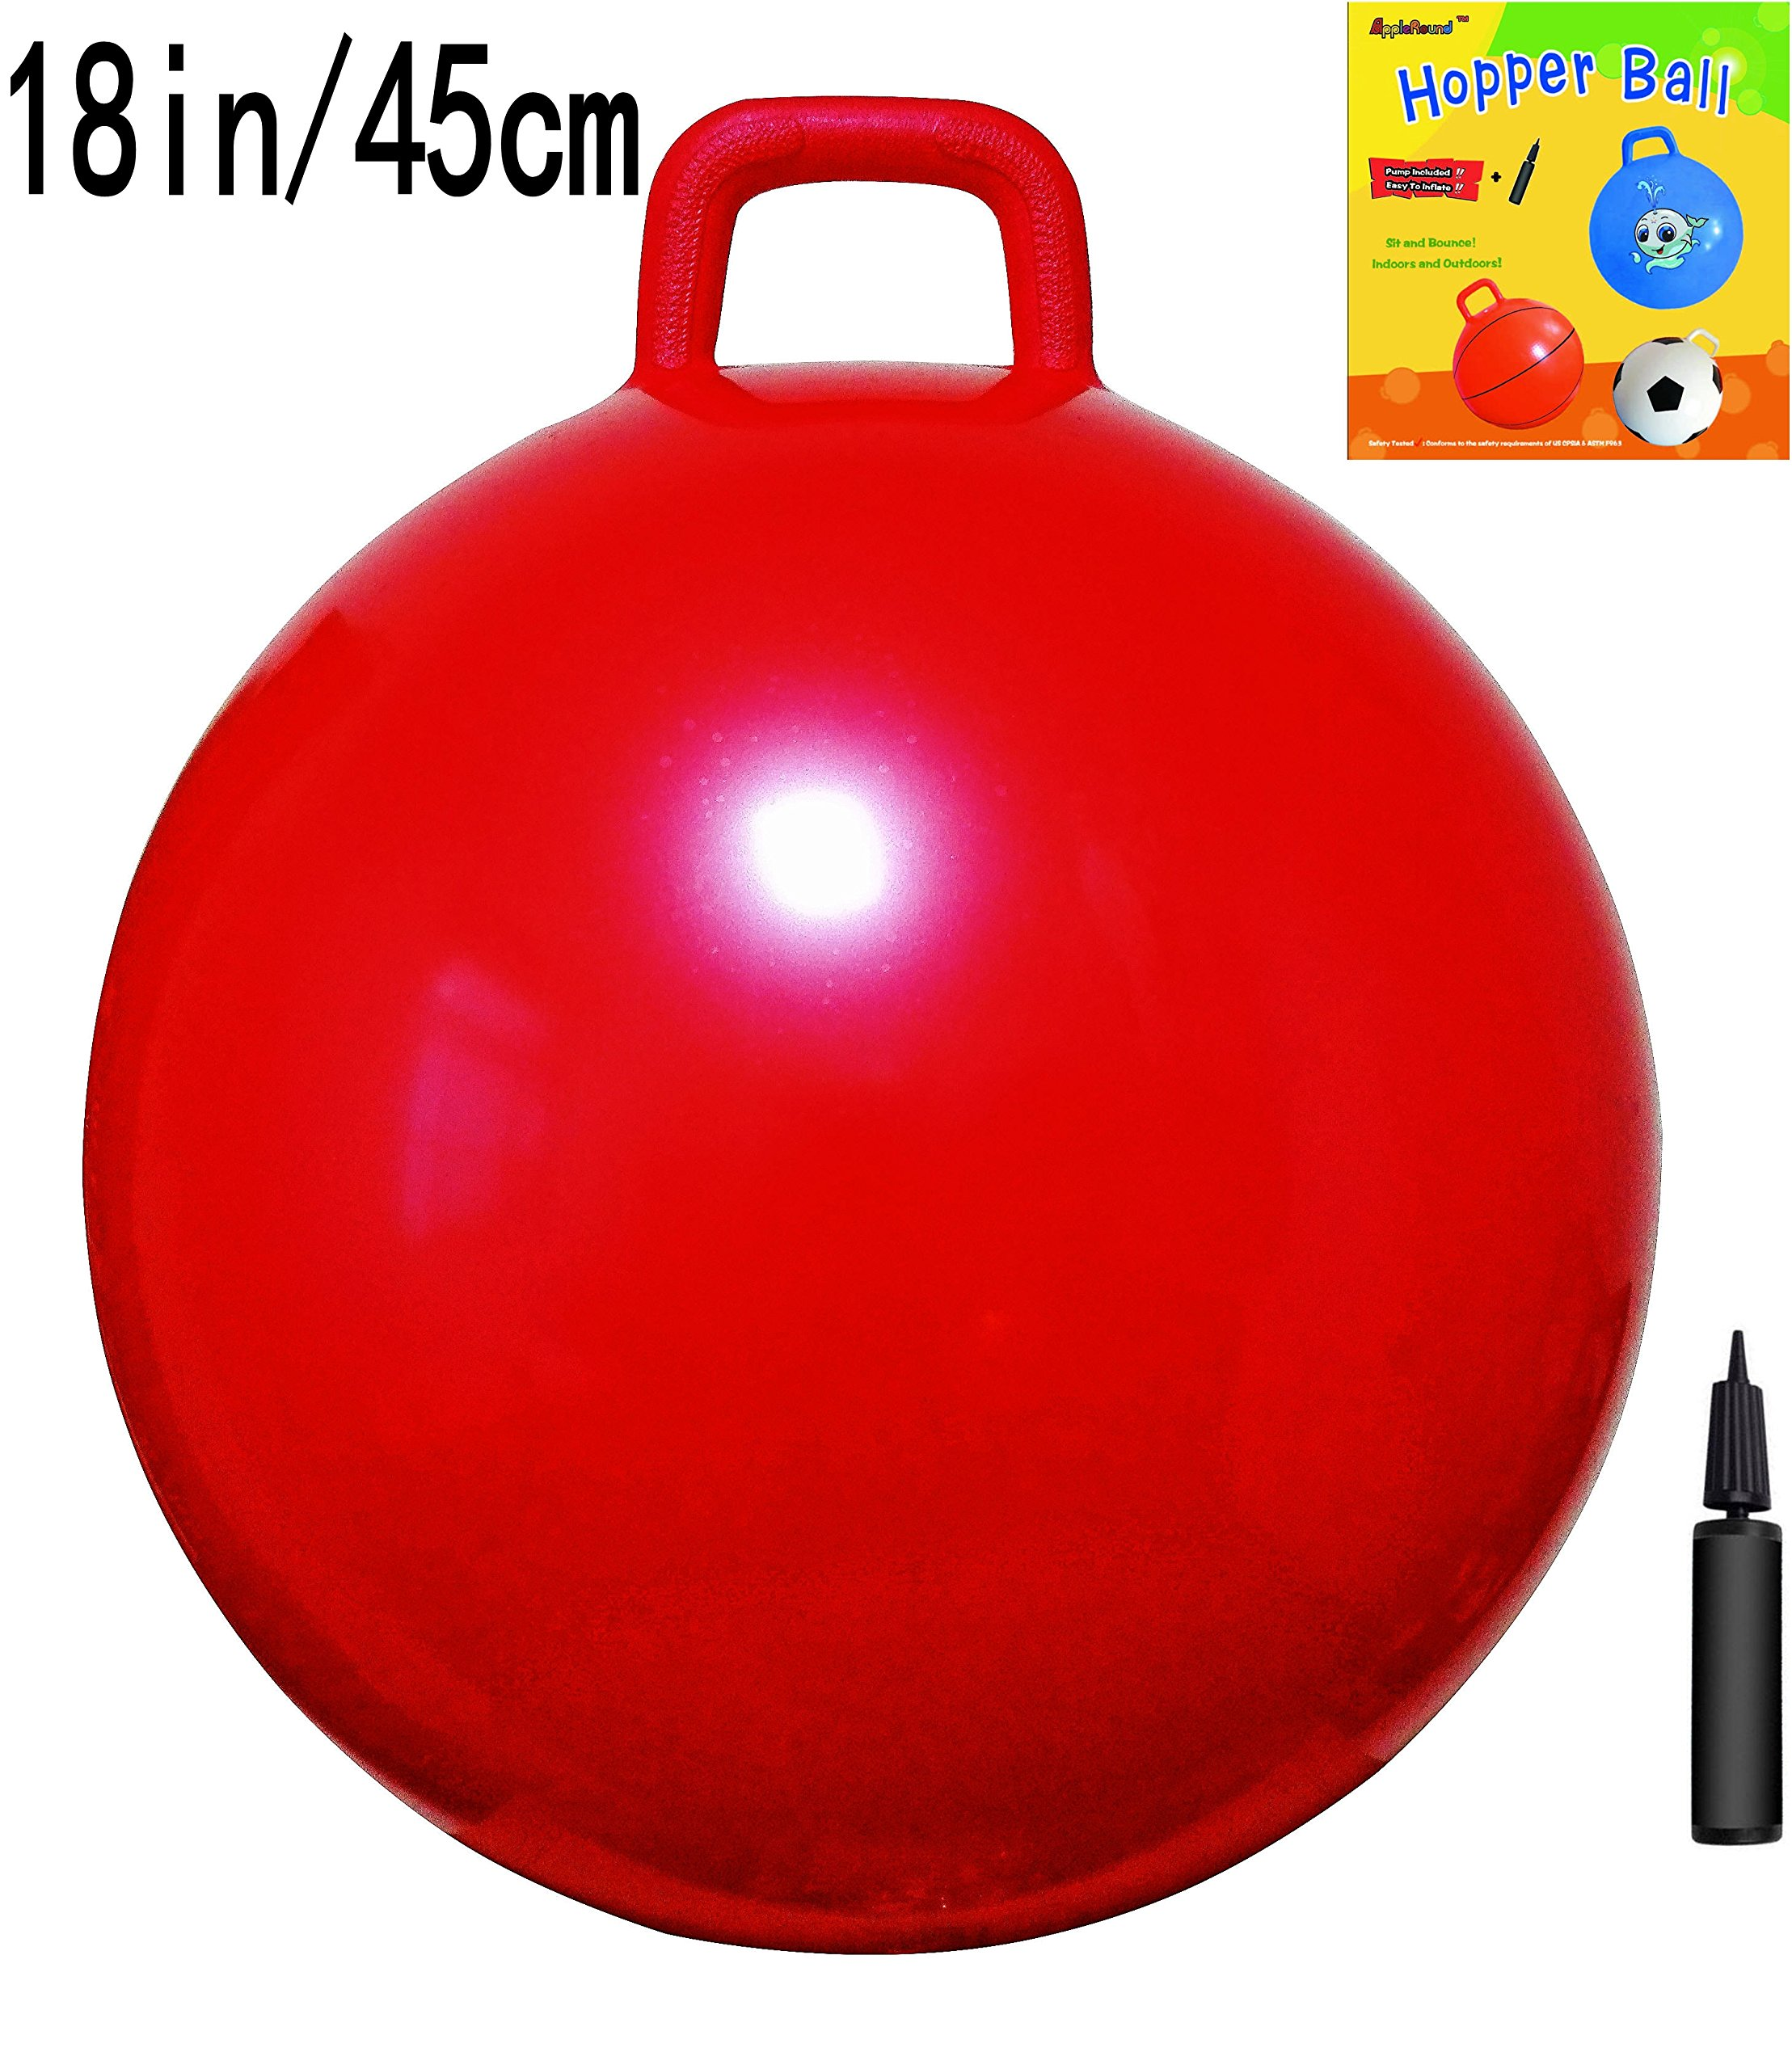 AppleRound Space Hopper Ball with Pump, 18in/45cm Diameter for Ages 3-6, Hop Ball, Kangaroo Bouncer, Hoppity Hop